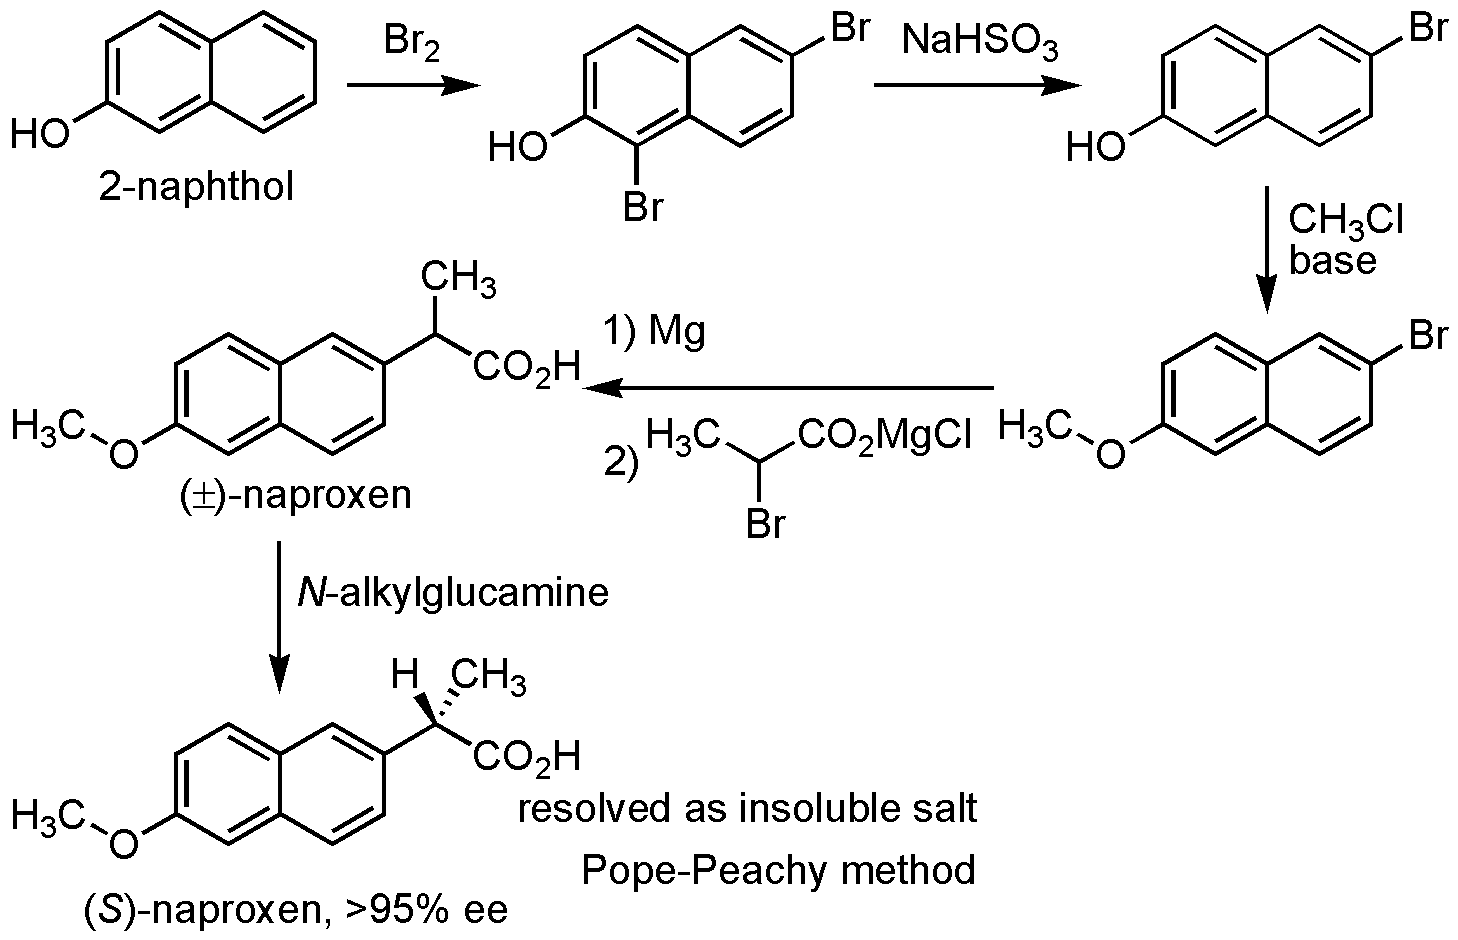 Naproxen Png - File:Large-Scale Synthesis of S-naproxen.png - Wikimedia Commons